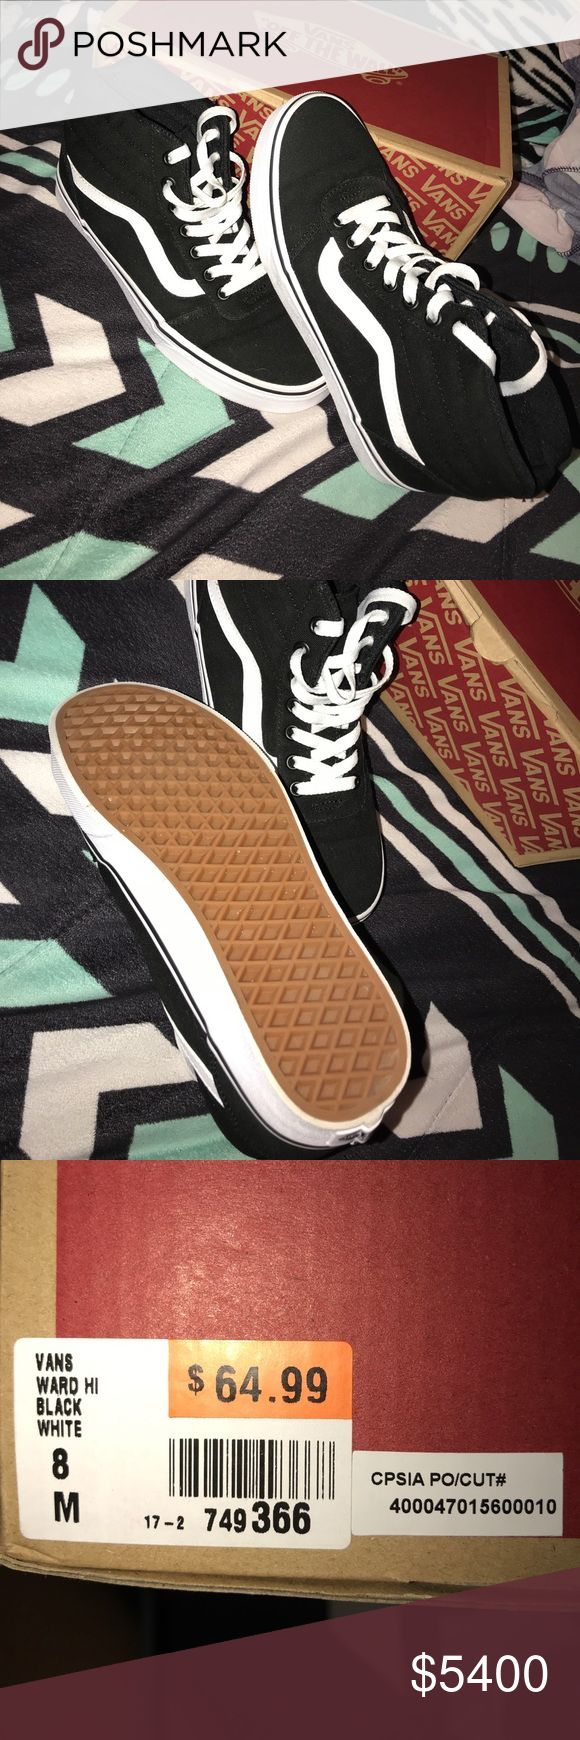 """Vans """"off the wall"""" Size 8. Worn maybe once or twice, basically brand new with the box. Bottoms are very clean, like said worn maybe once or twice. Asking retail price or best offer. Vans Shoes Sneakers"""